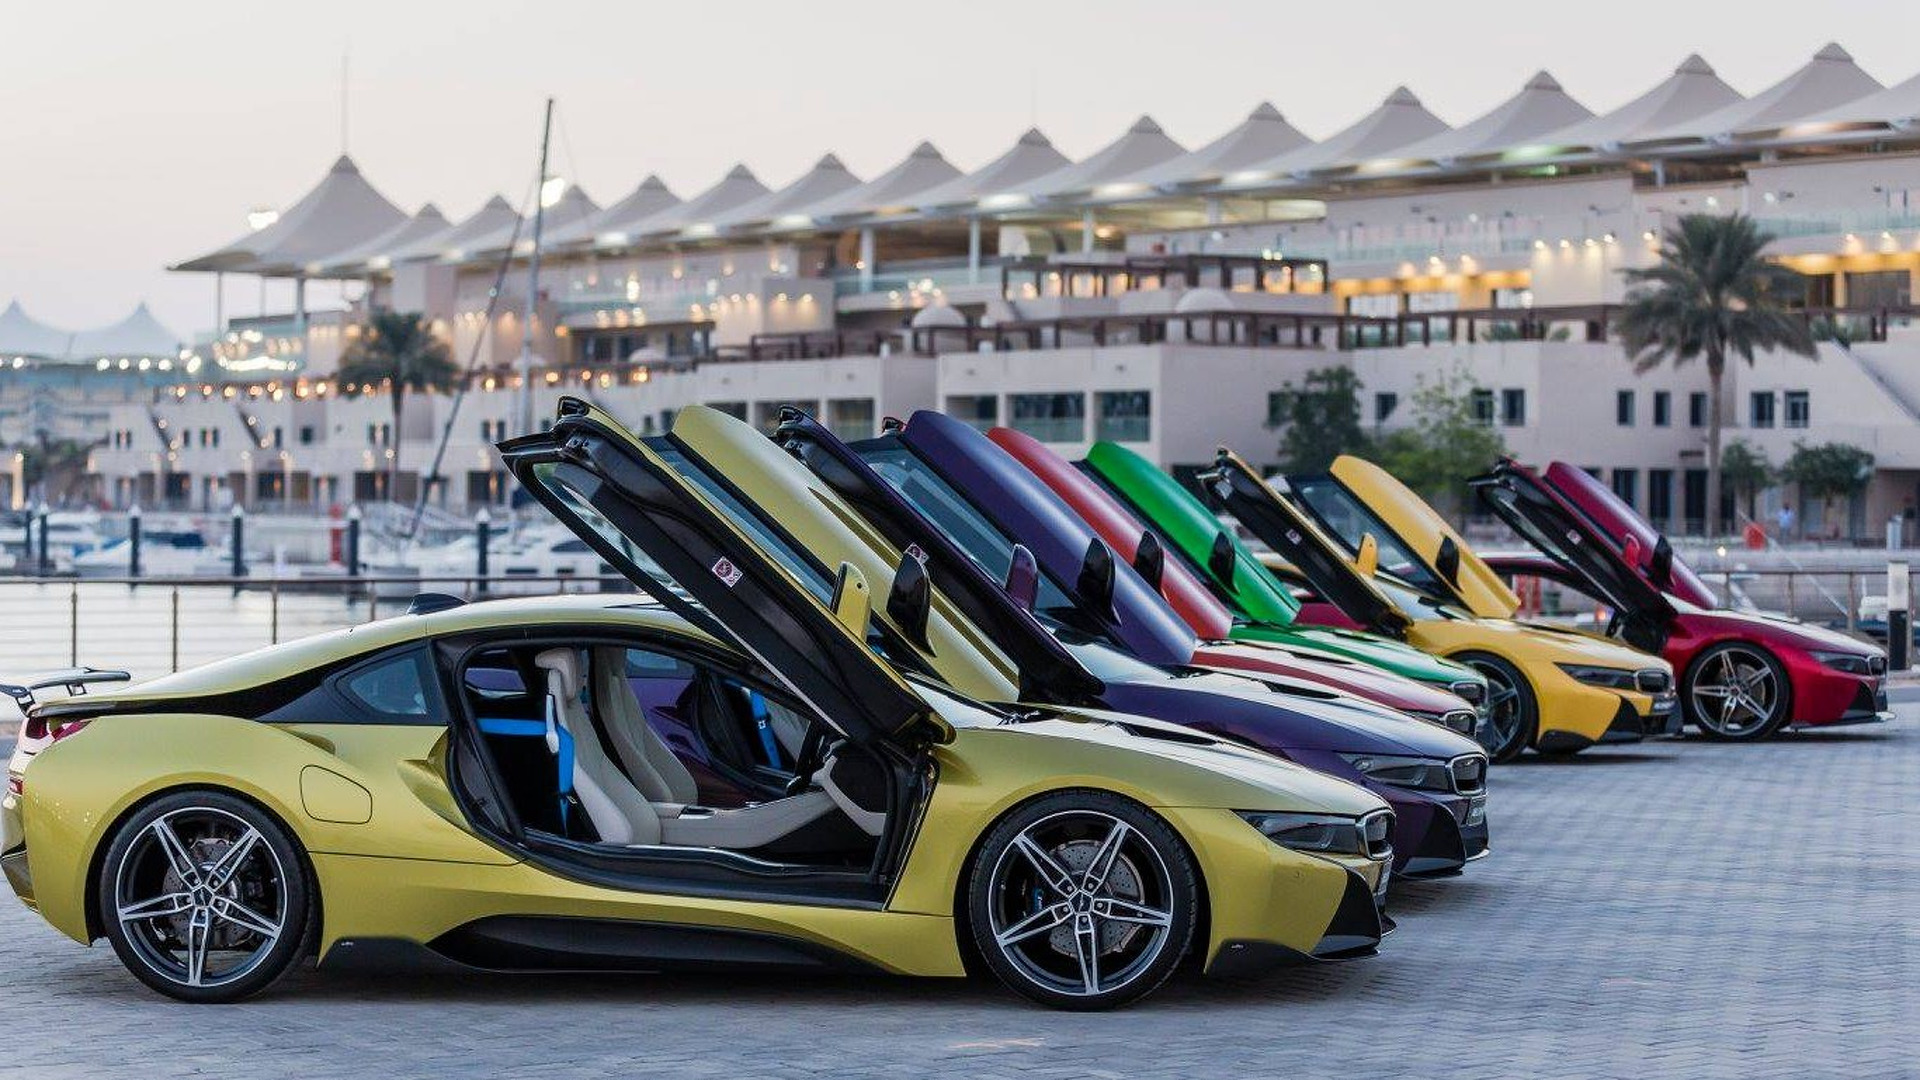 Colorful Bmw I8s Return In Extensive Gallery 67 Photos